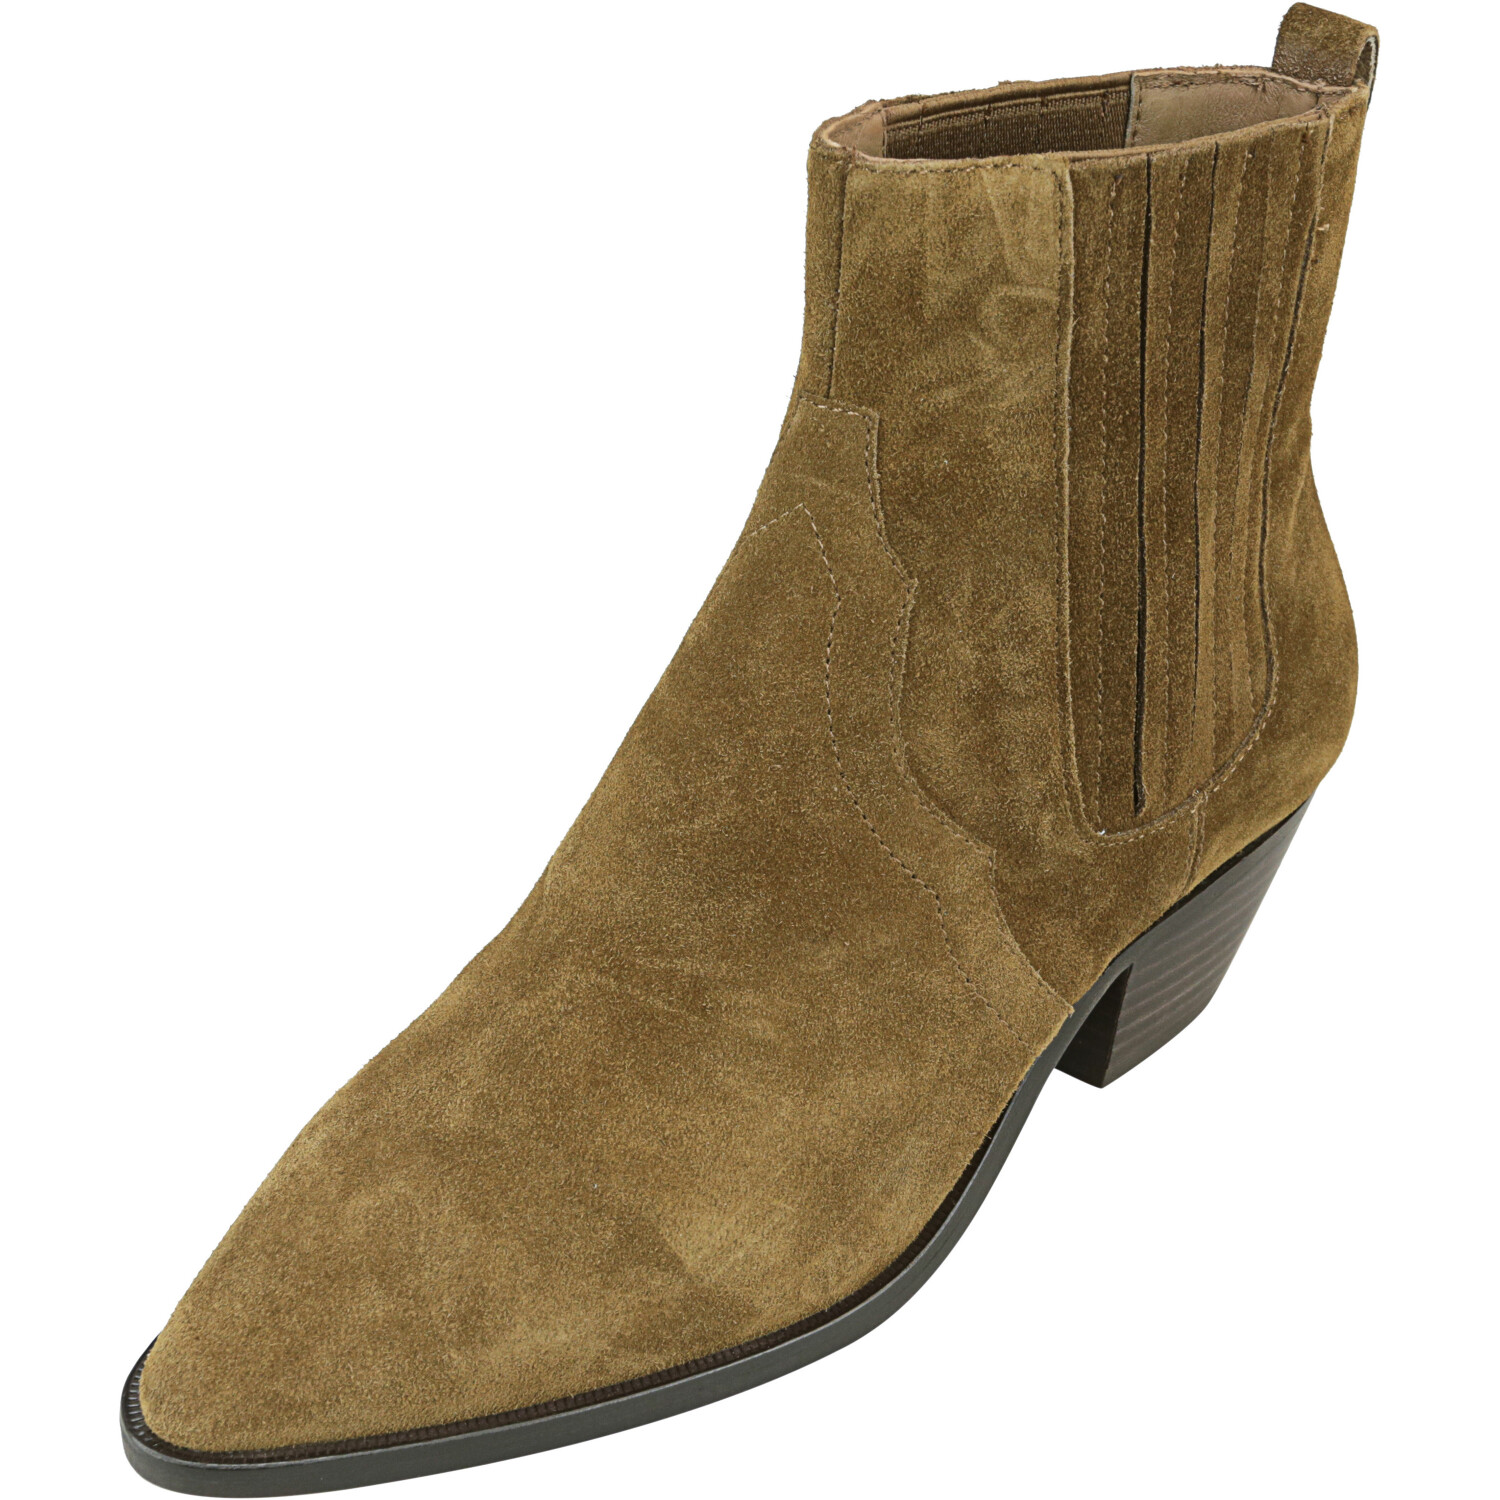 Ash Women's Future Russet Ankle-High Leather Boot - 7M